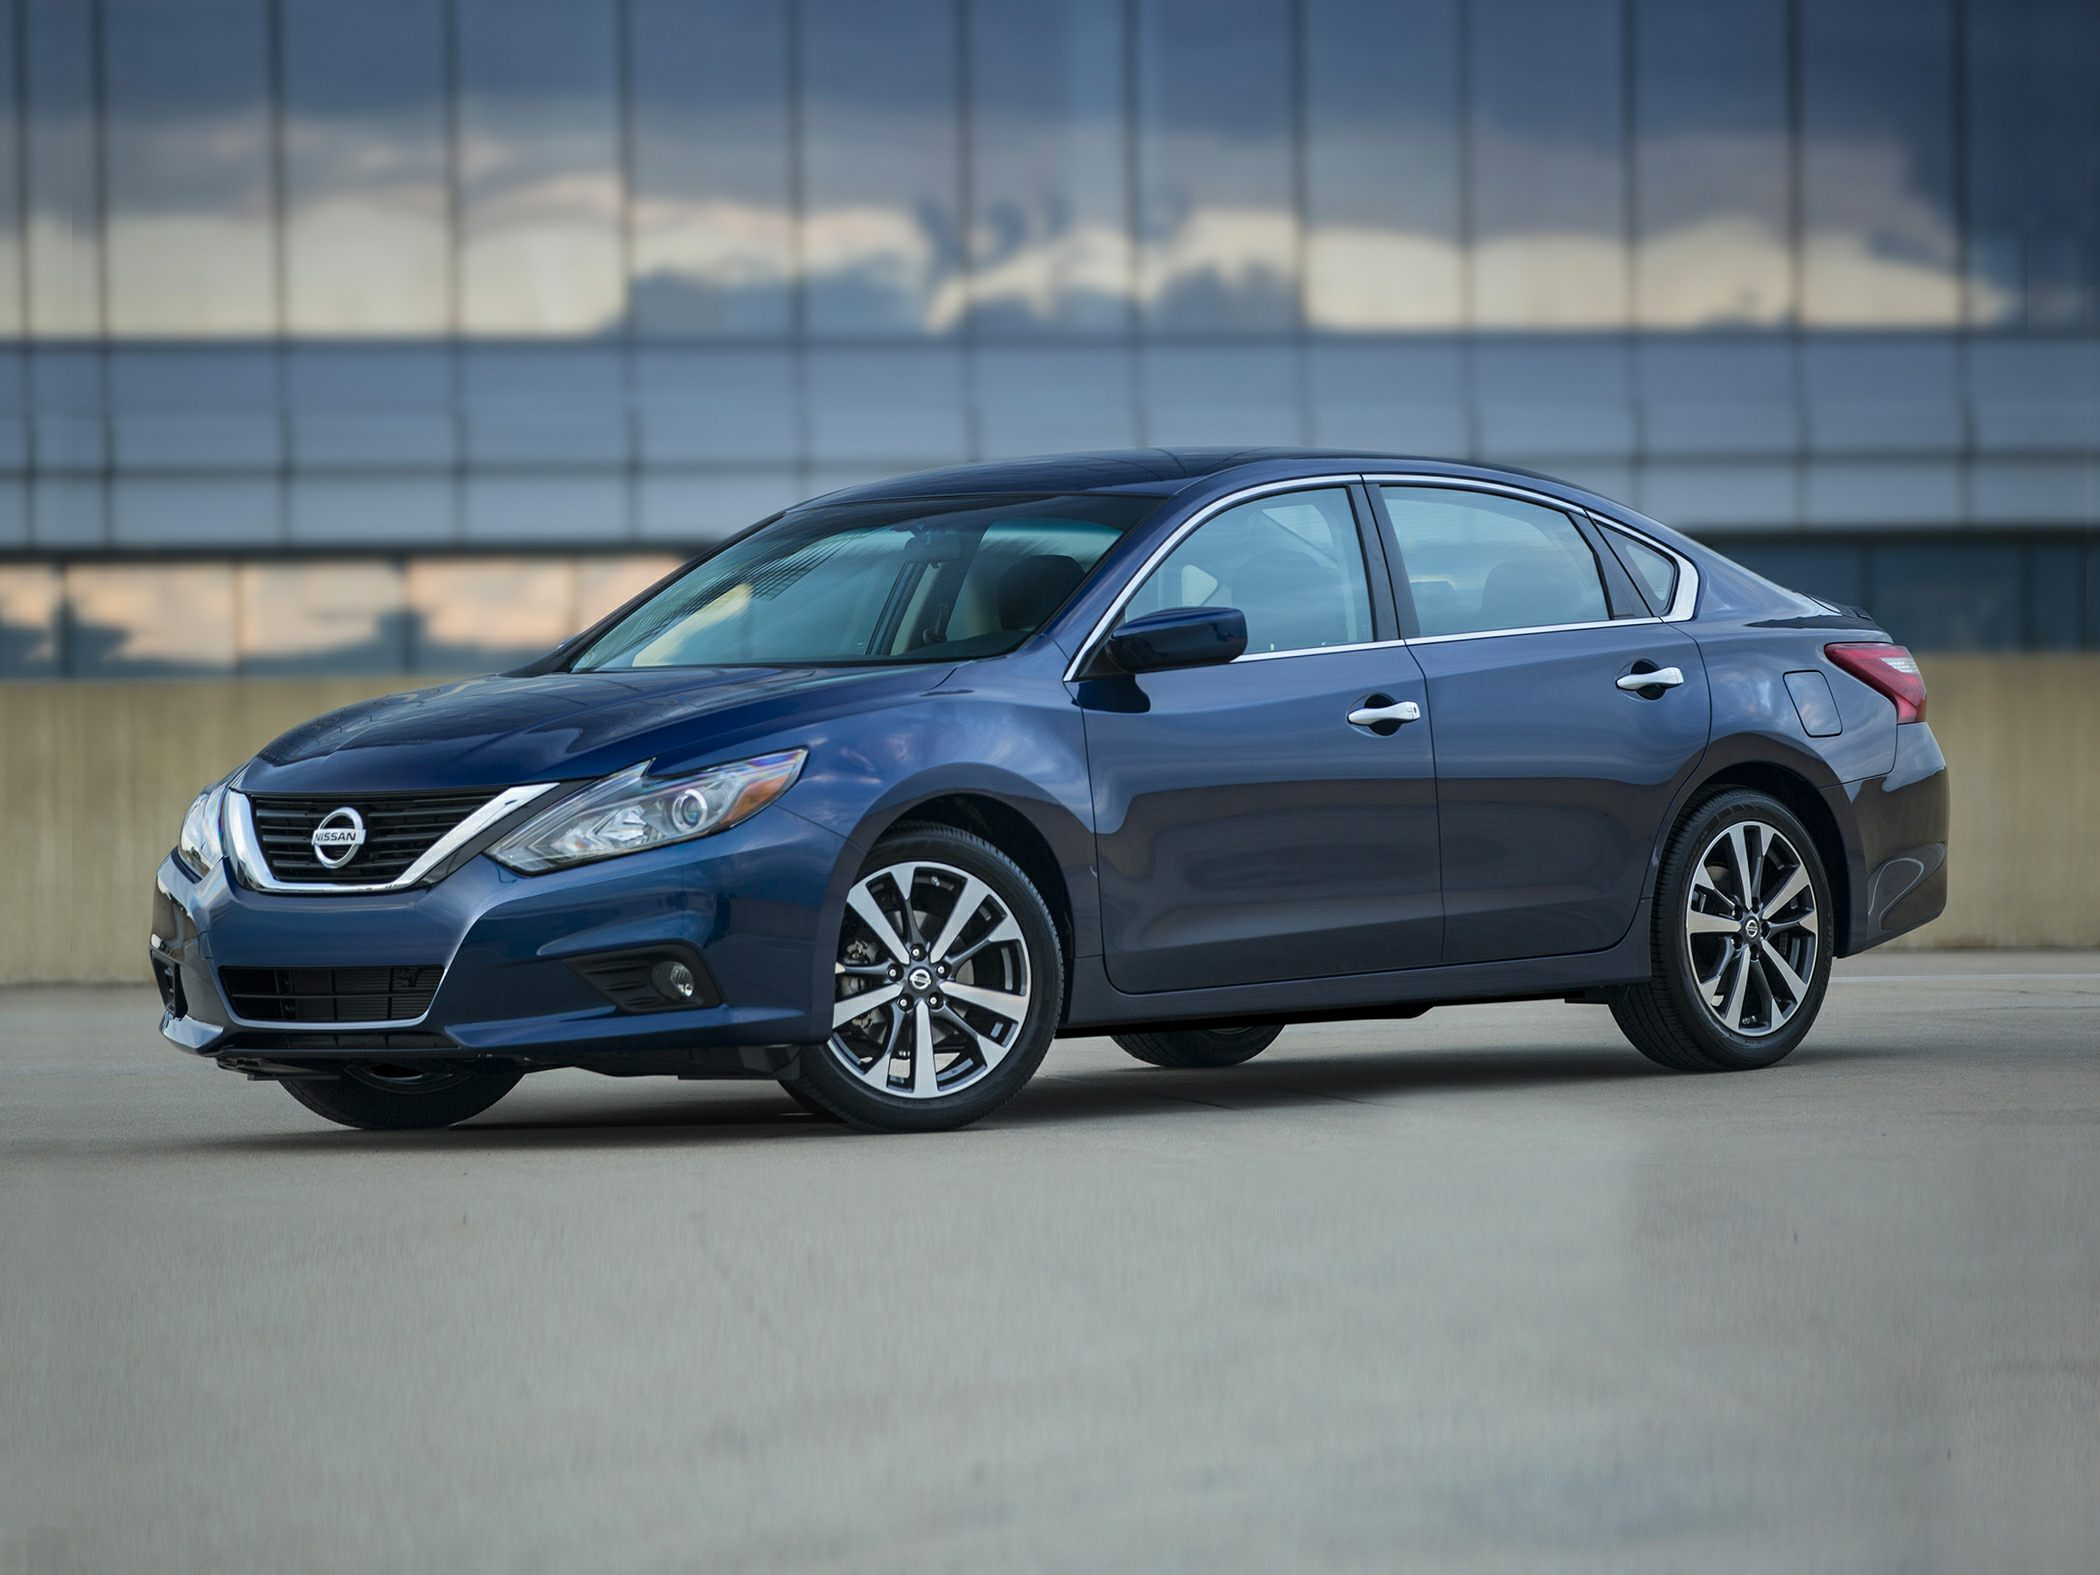 2016 nissan altima styles features highlights nissan altima vanachro Image collections